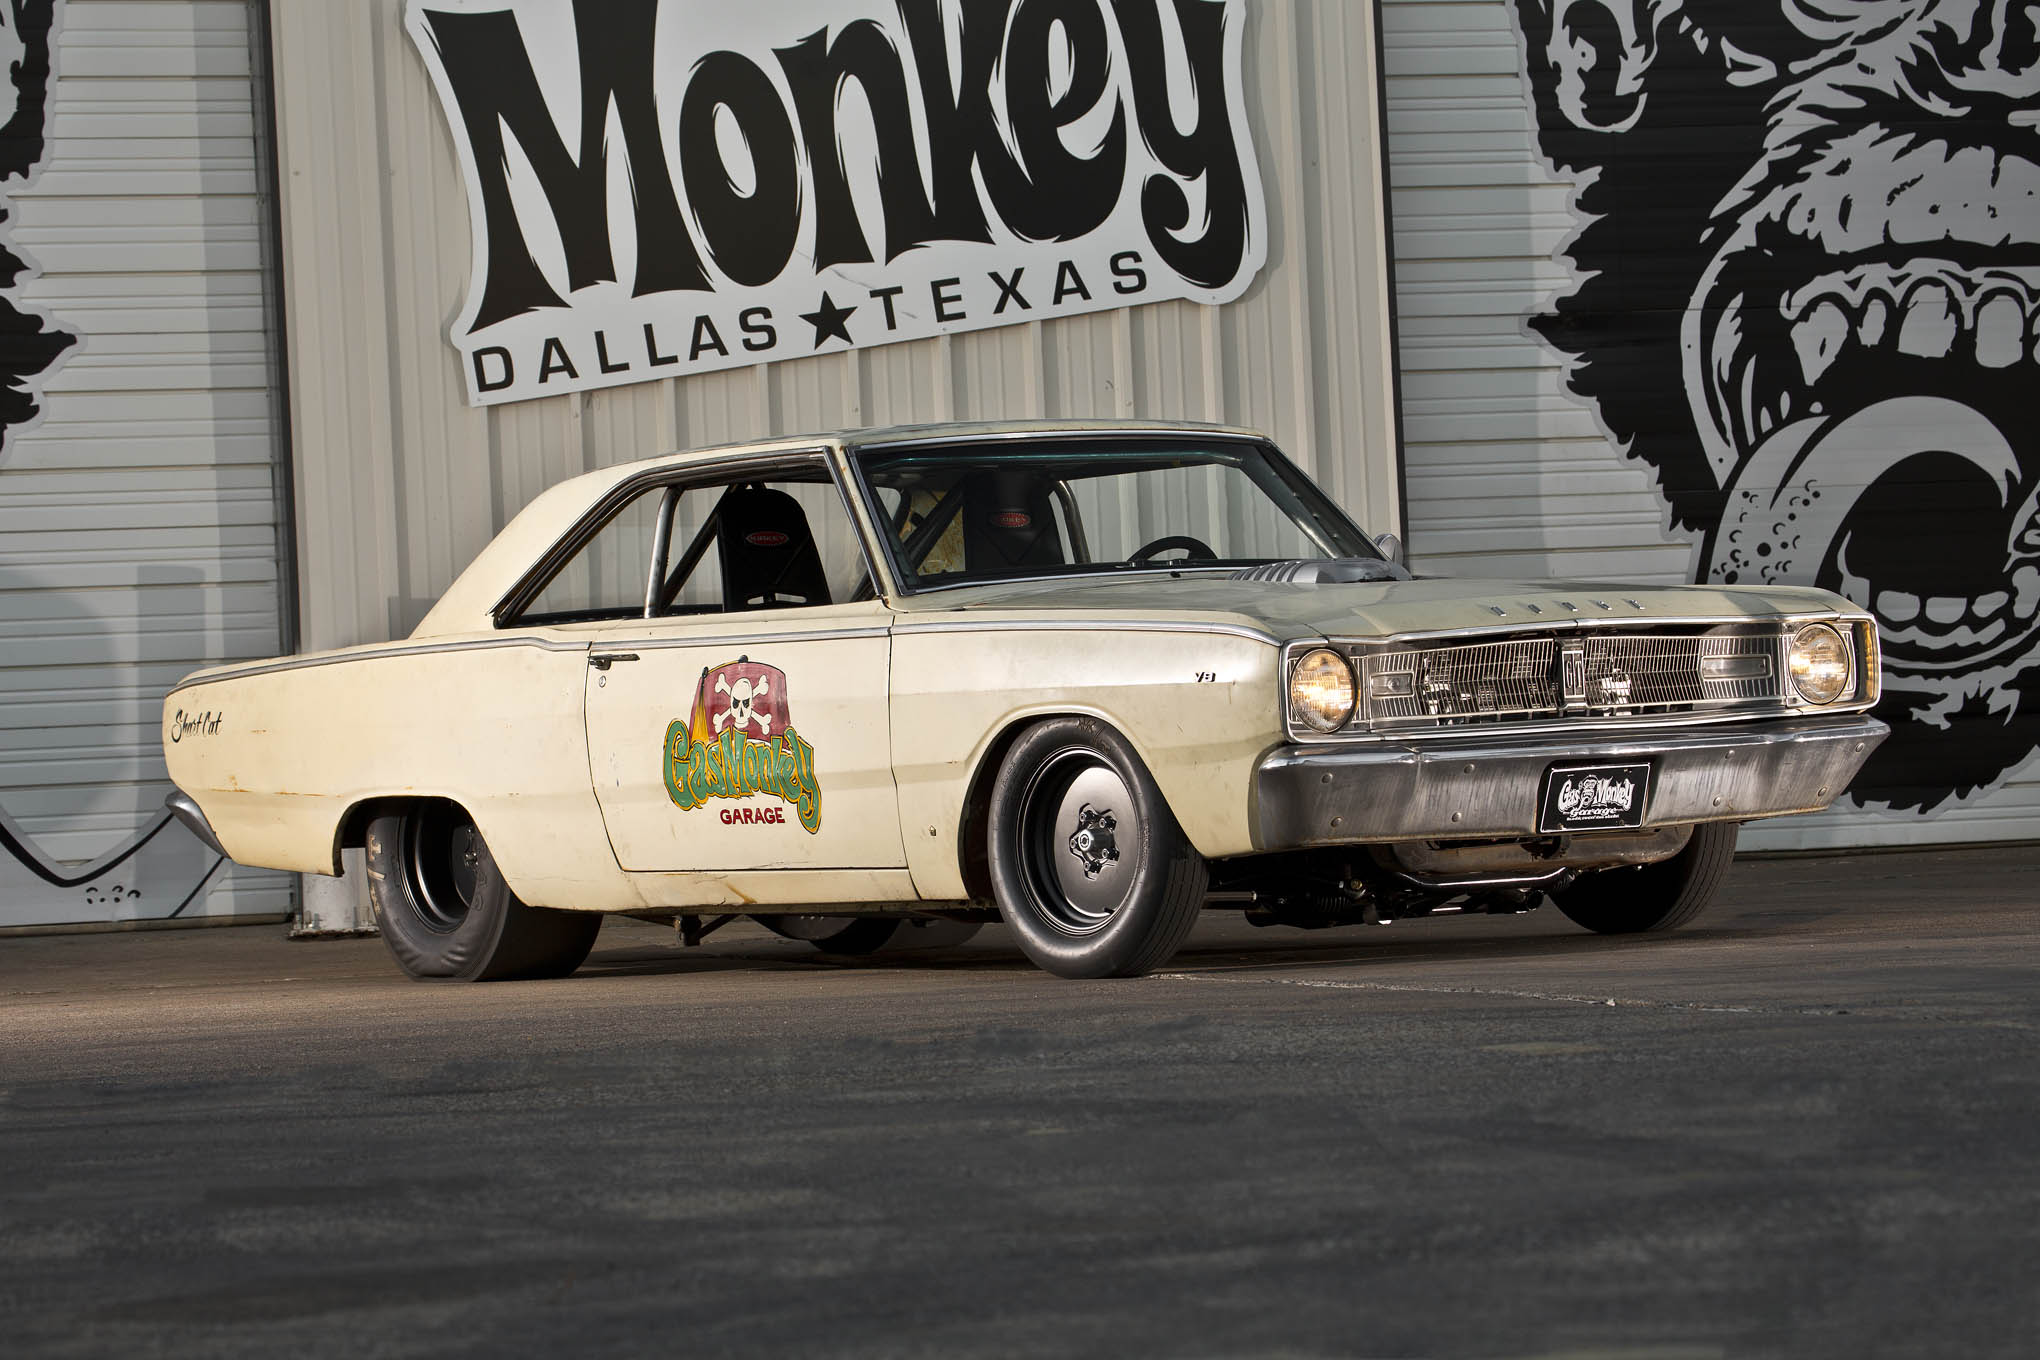 1968 Dodge Charger Wallpaper Cars Revealed How Gas Monkey S 67 Dart Beat Roadkill Hot